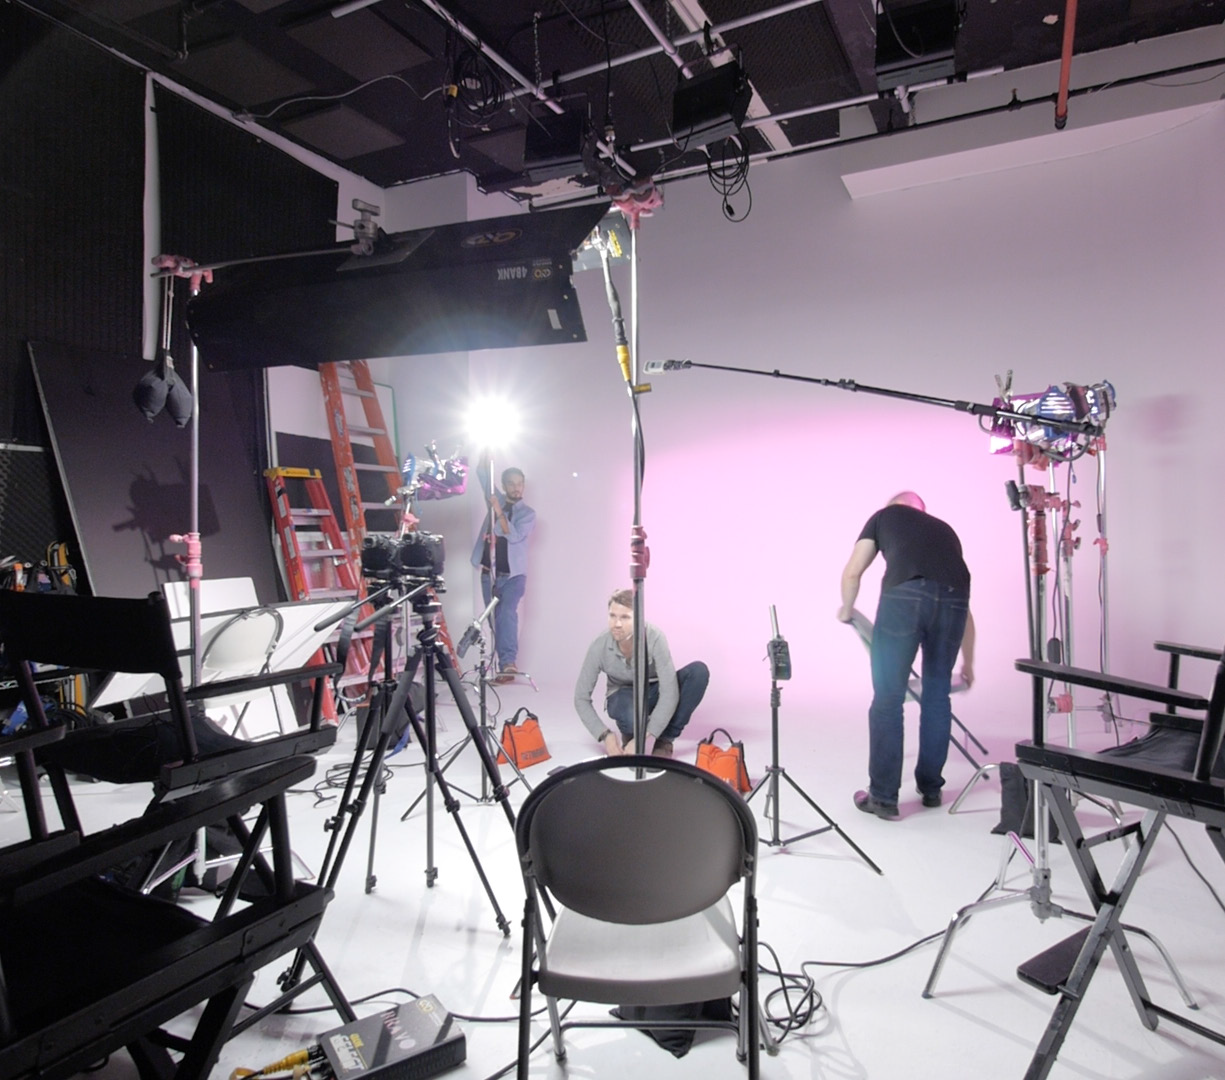 Professional, Company Promotional Video Near Manhattan, NY - Top Notch Cinema - About-us